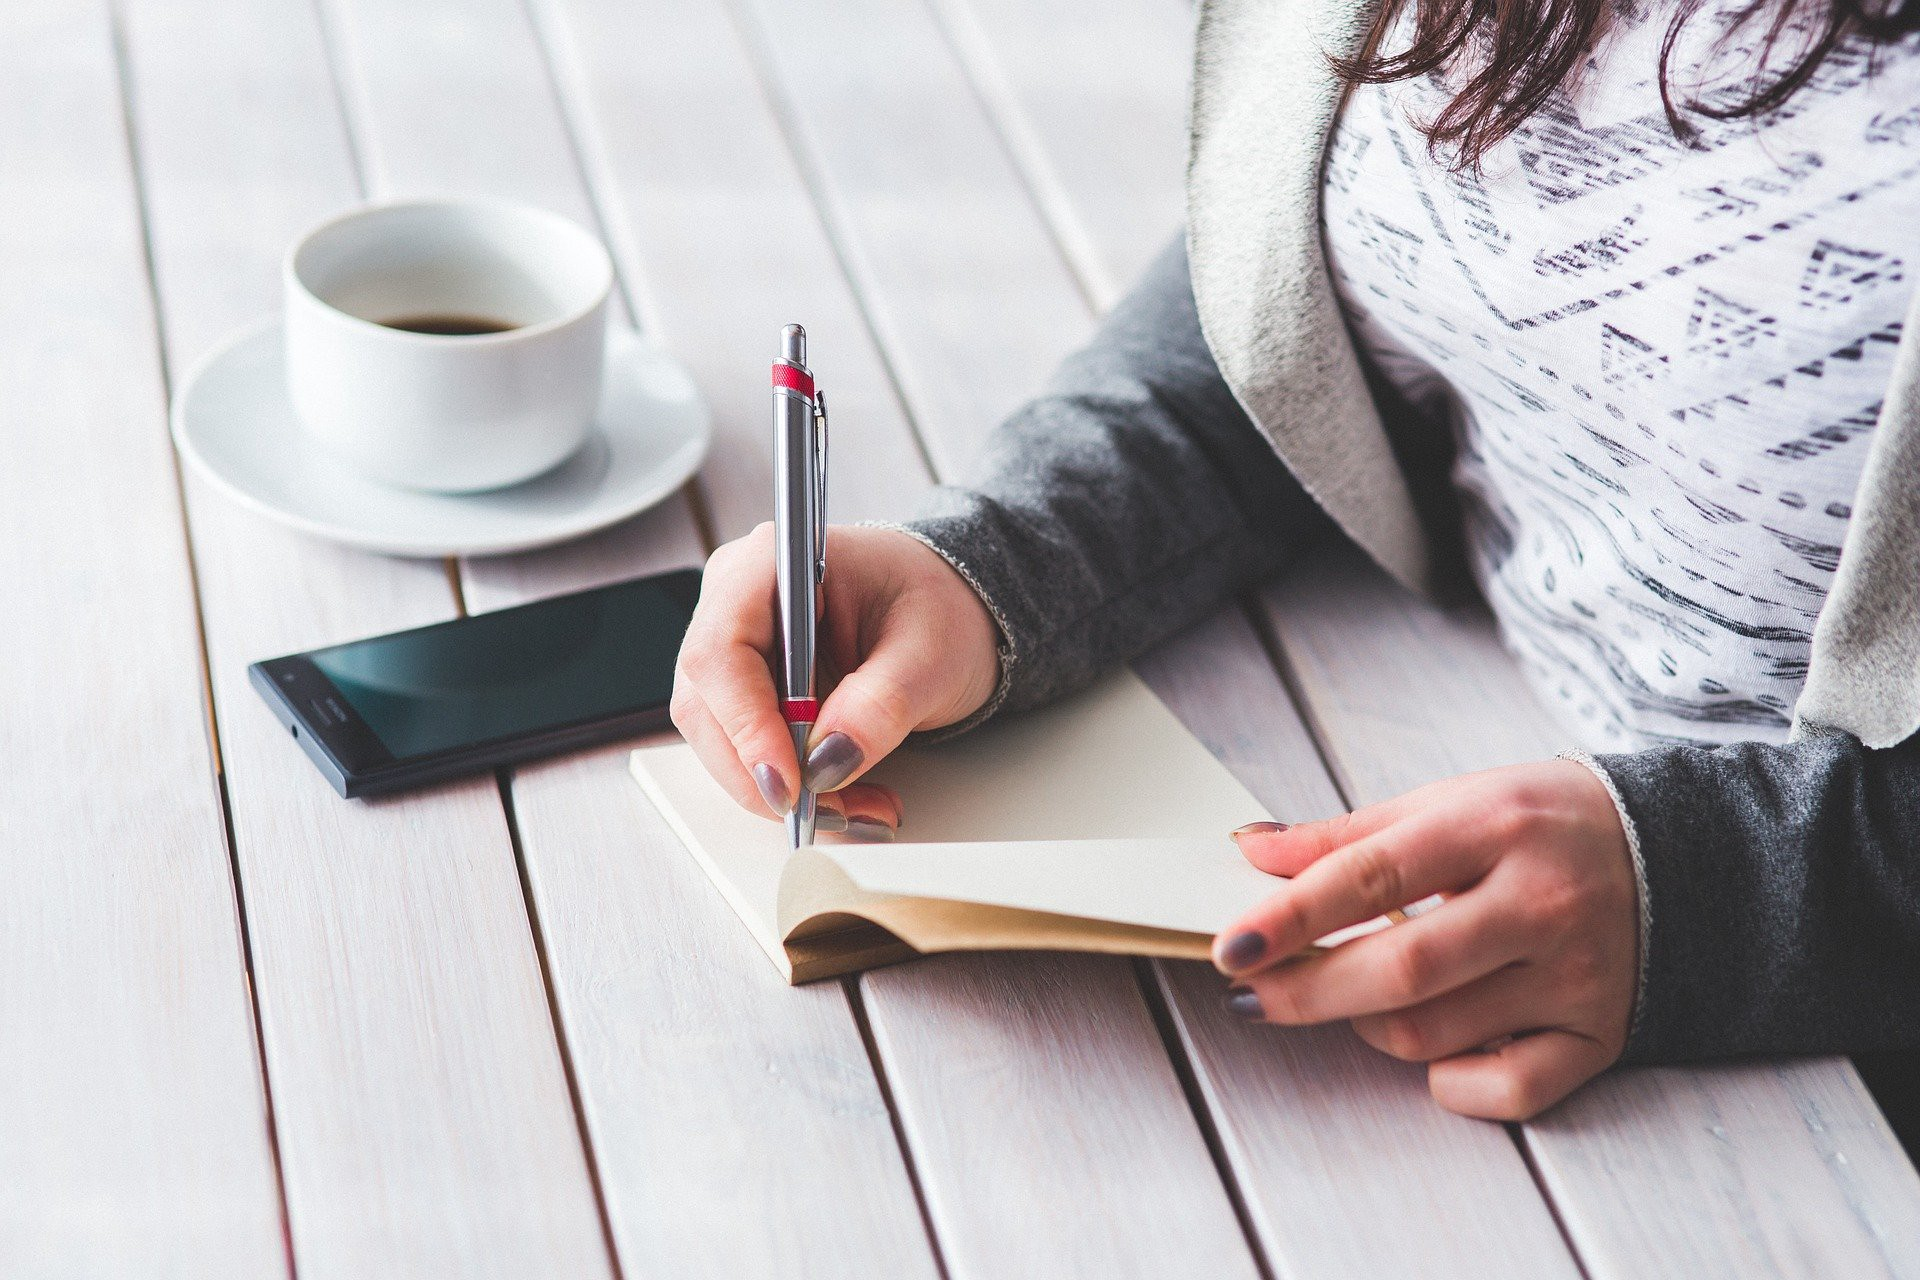 woman with coffee, phone, and notebook sitting at picnic table writing about what she's learned about herself through writing